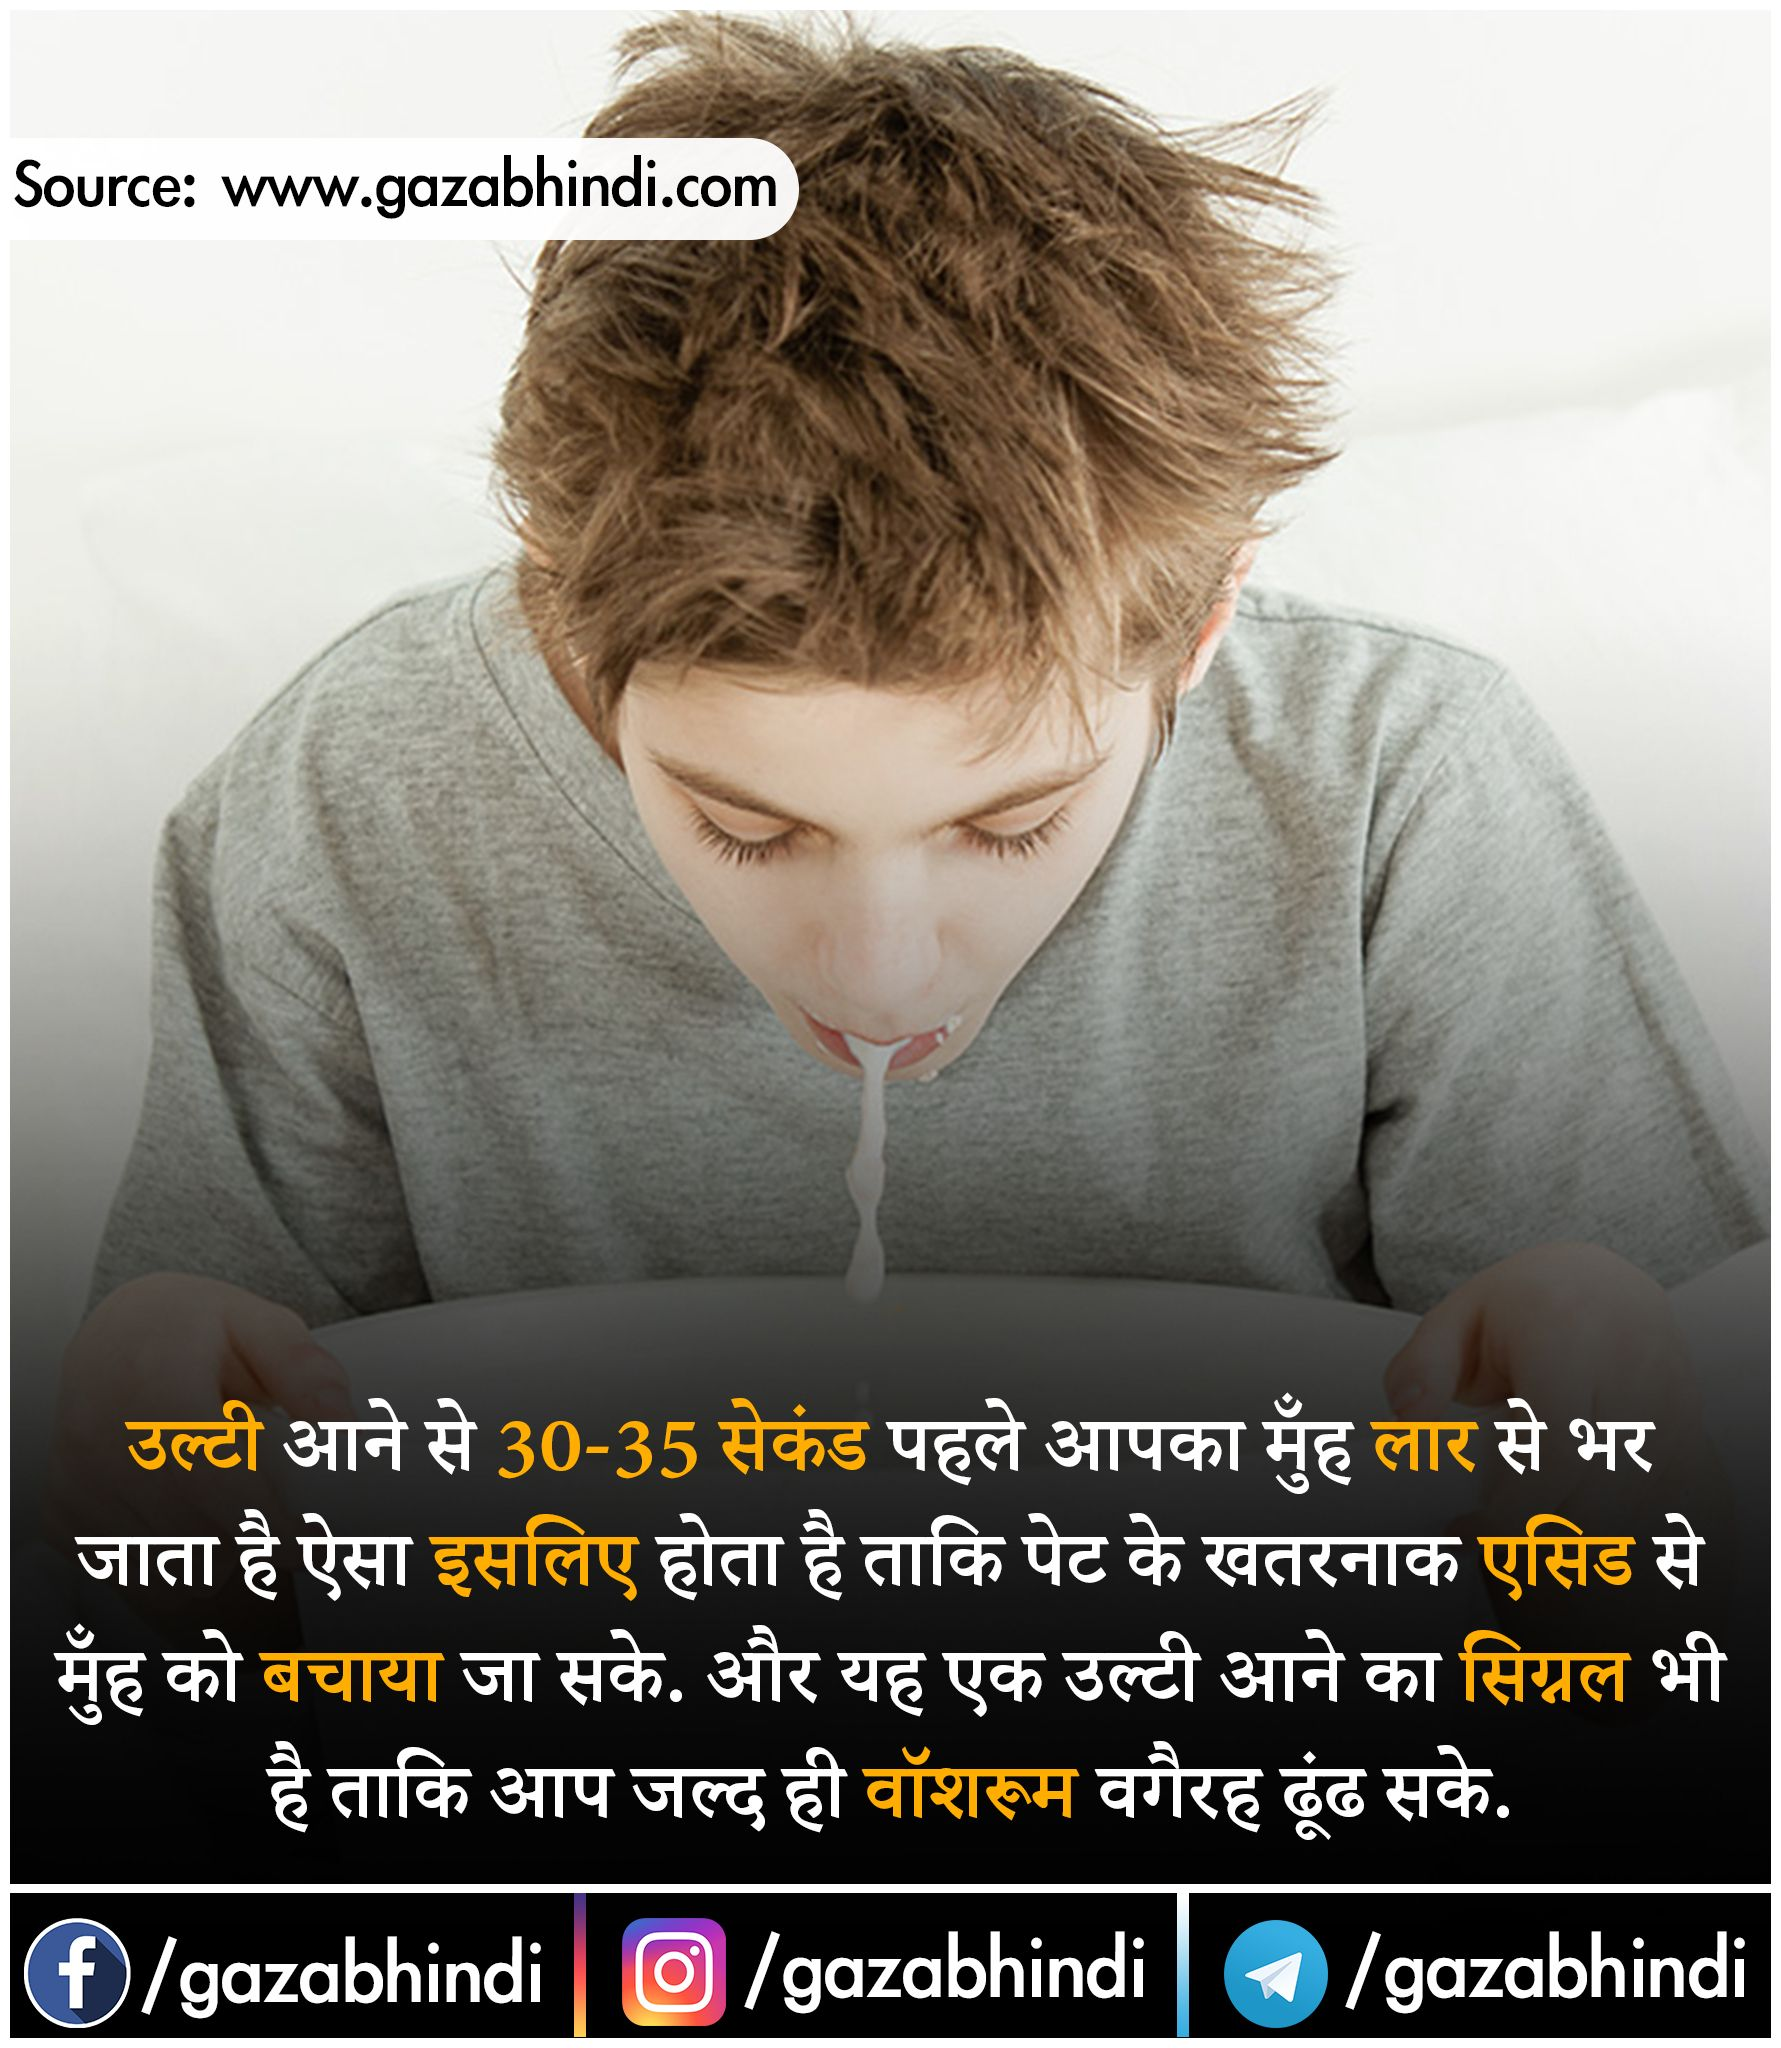 Science Facts General Knowledge: Pin By Singh_sahab_the_great On General Knowledge